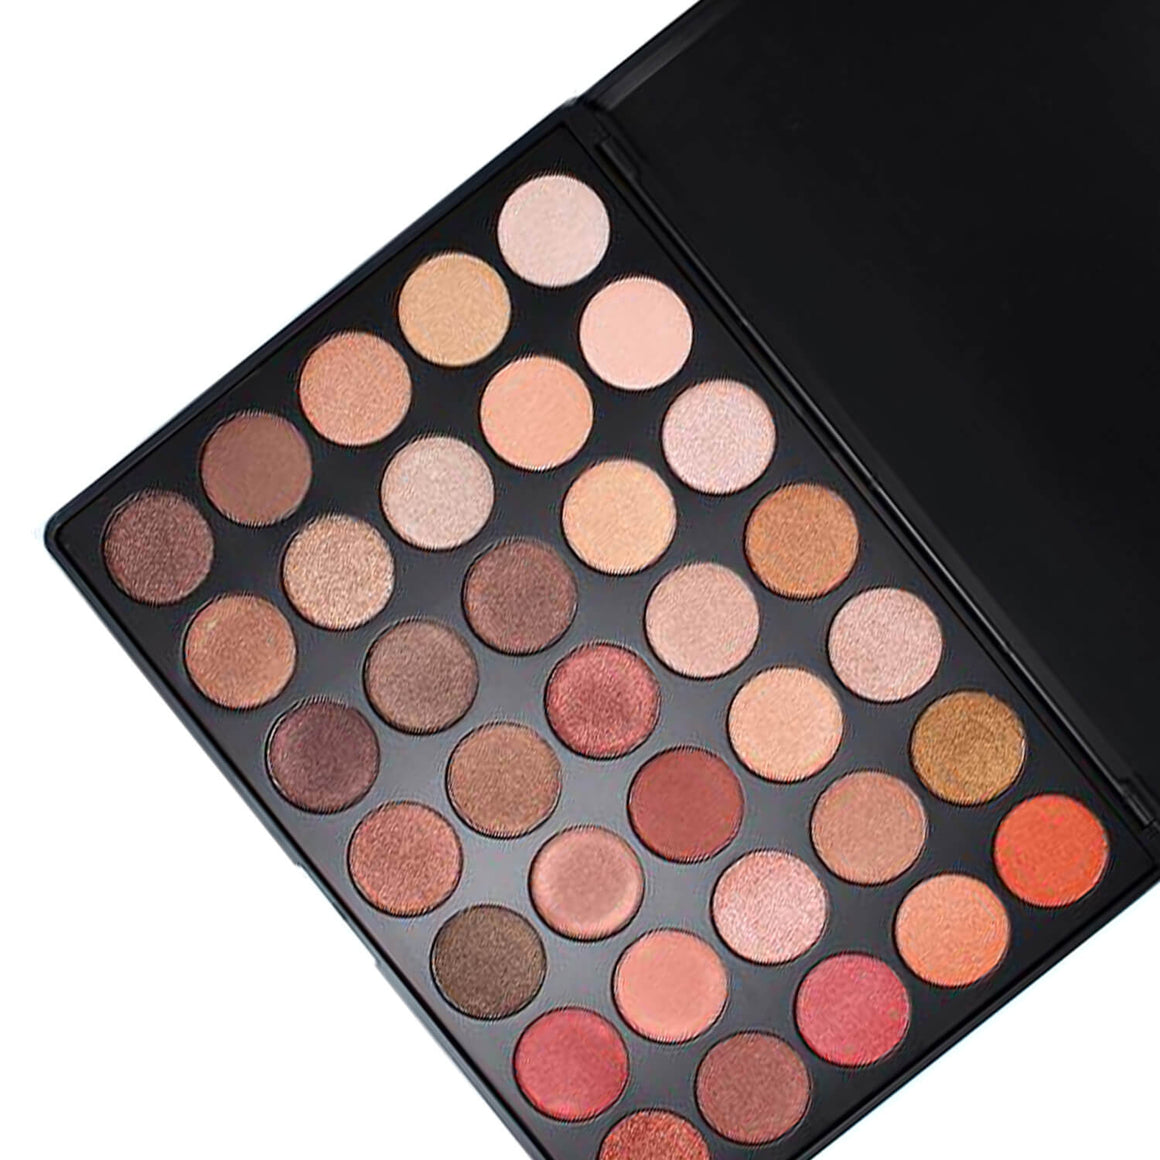 Buy Morphe Cosmetics In Australia From Official Stockist